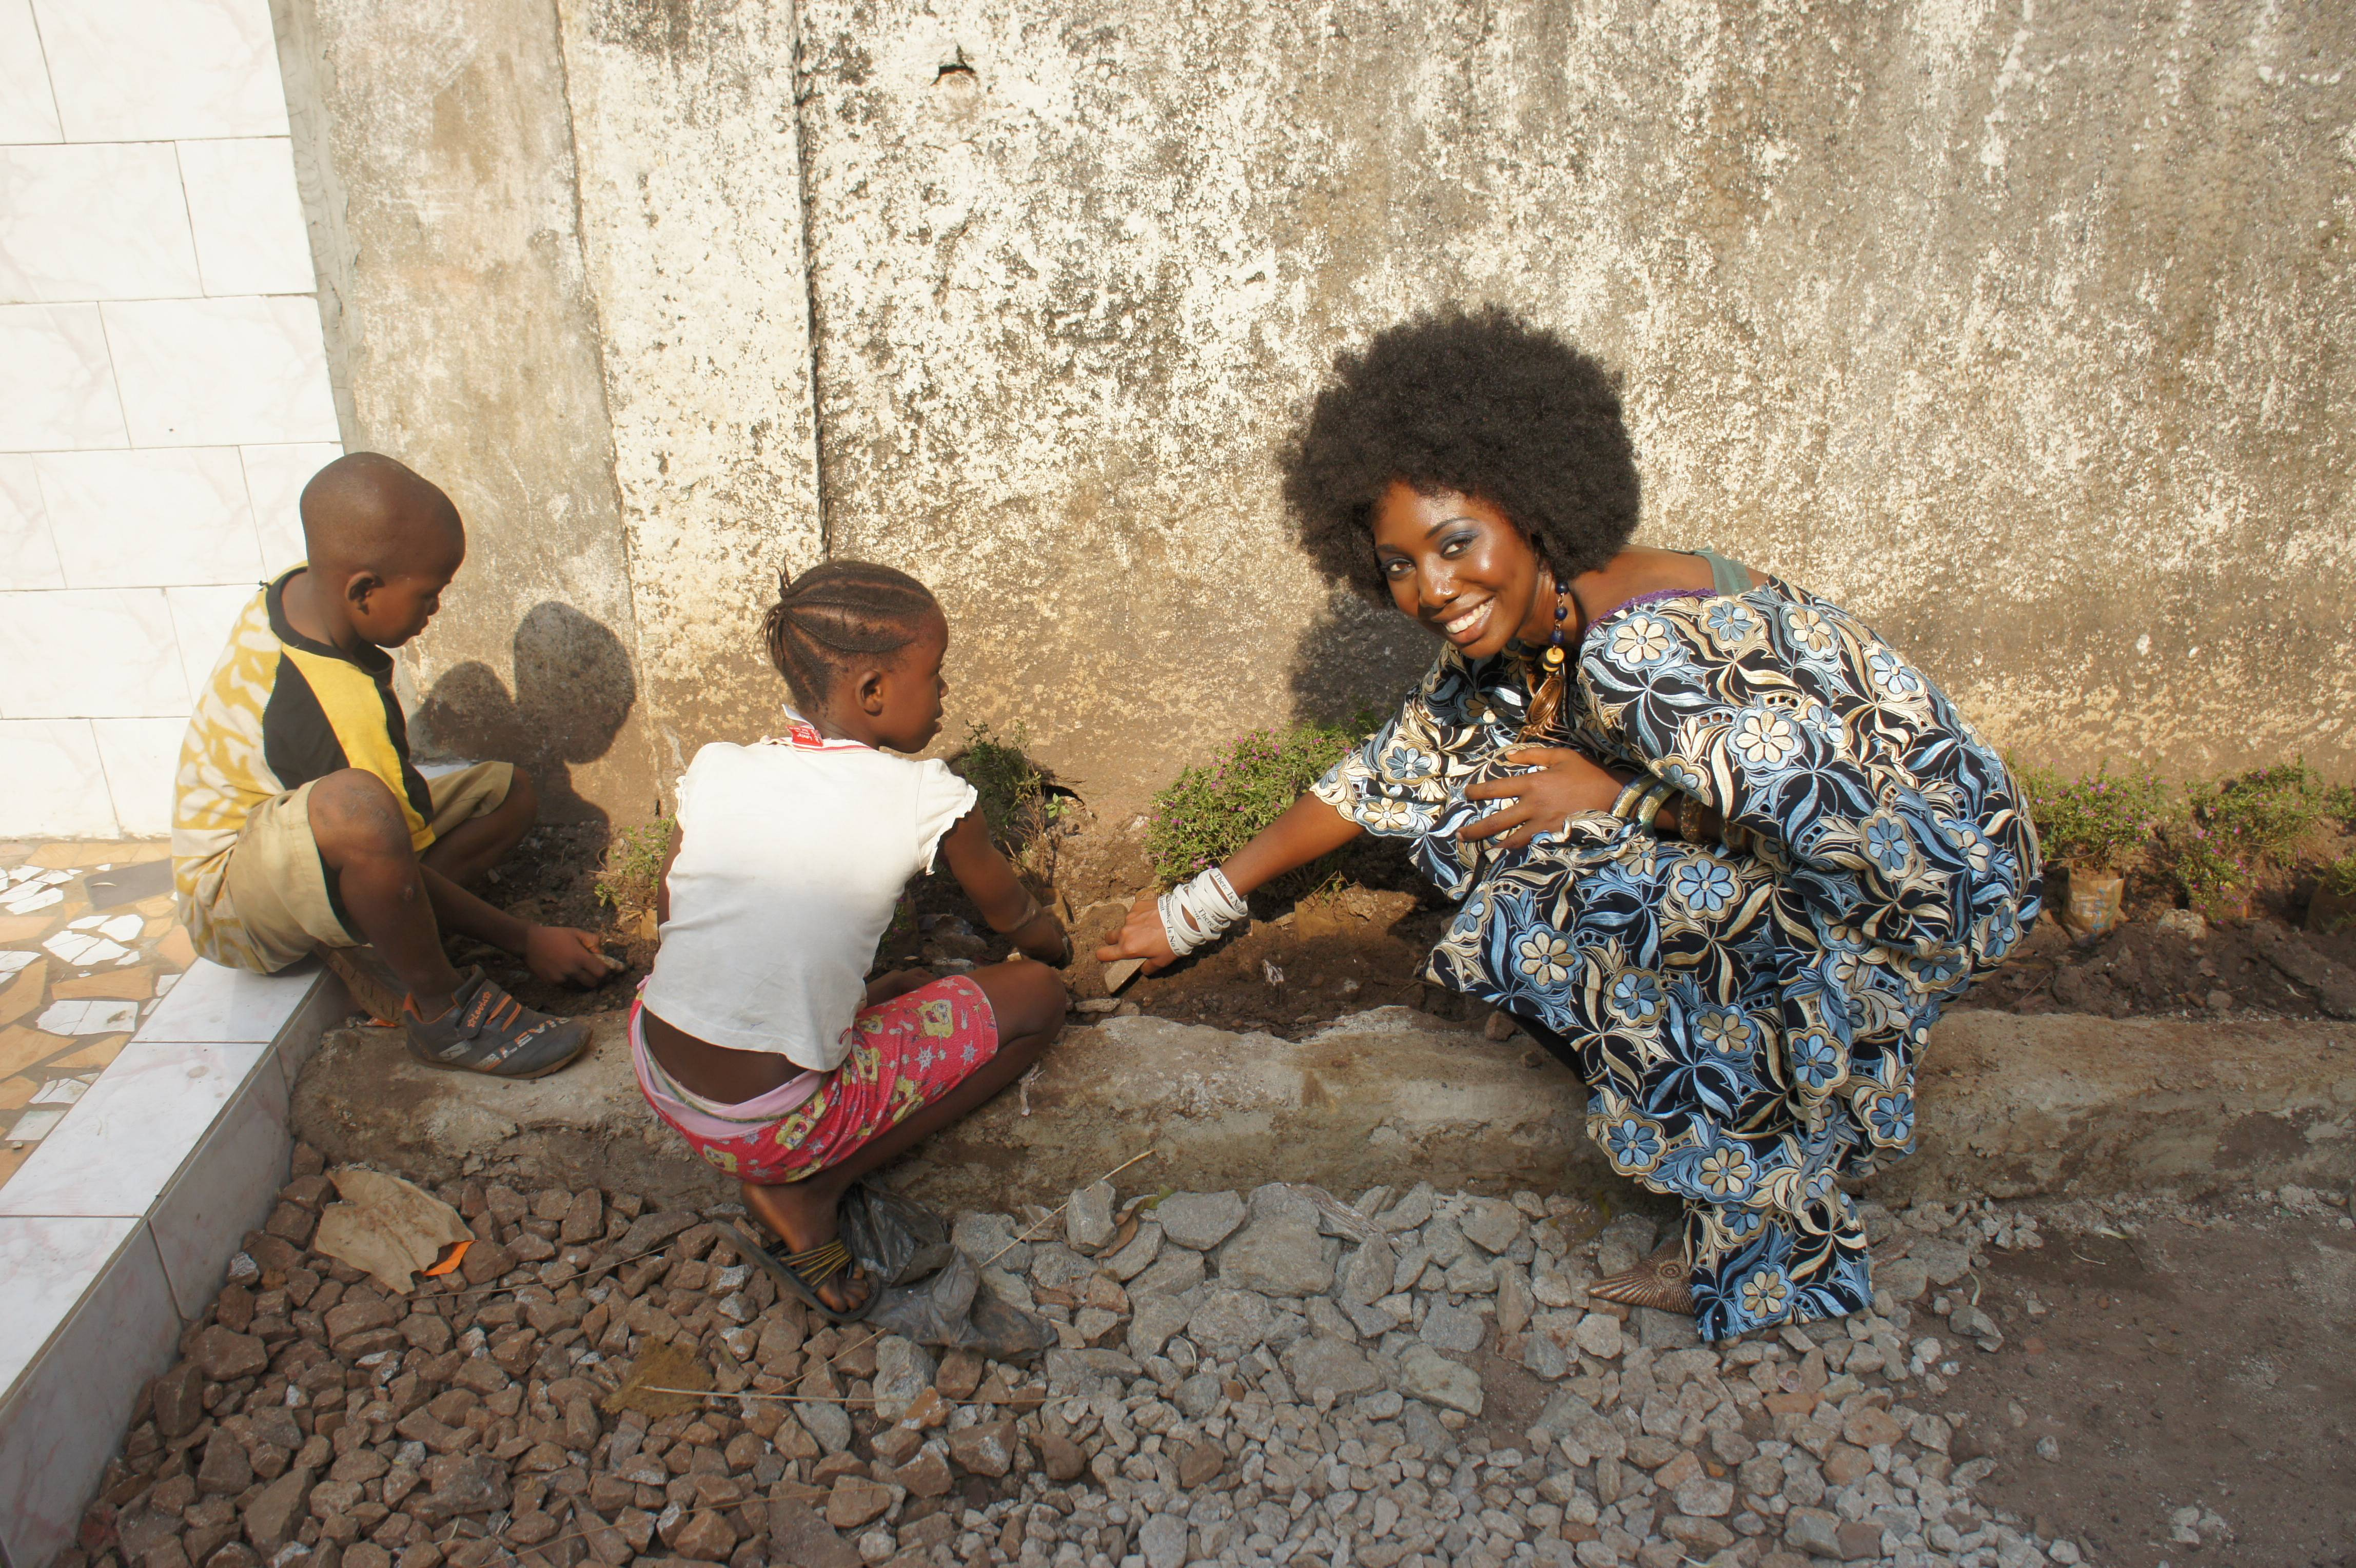 Students  and Me (Mariama M. Petrolawicz) Planting Flowers at Tombo II Primary School in Guinea